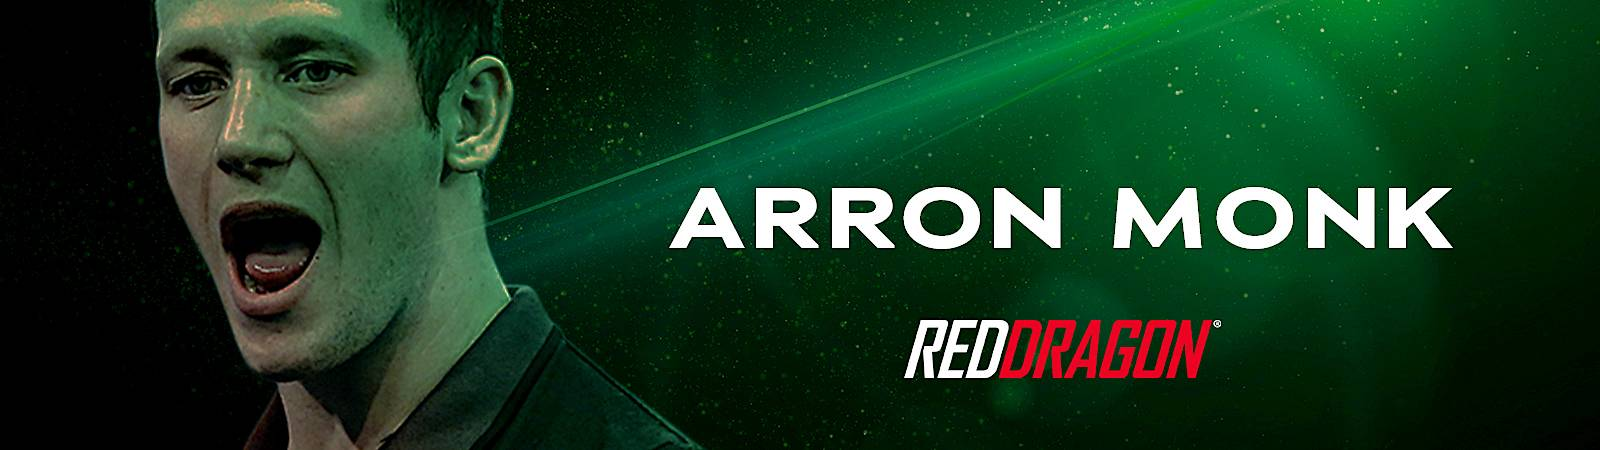 Red Dragon Arron Monk